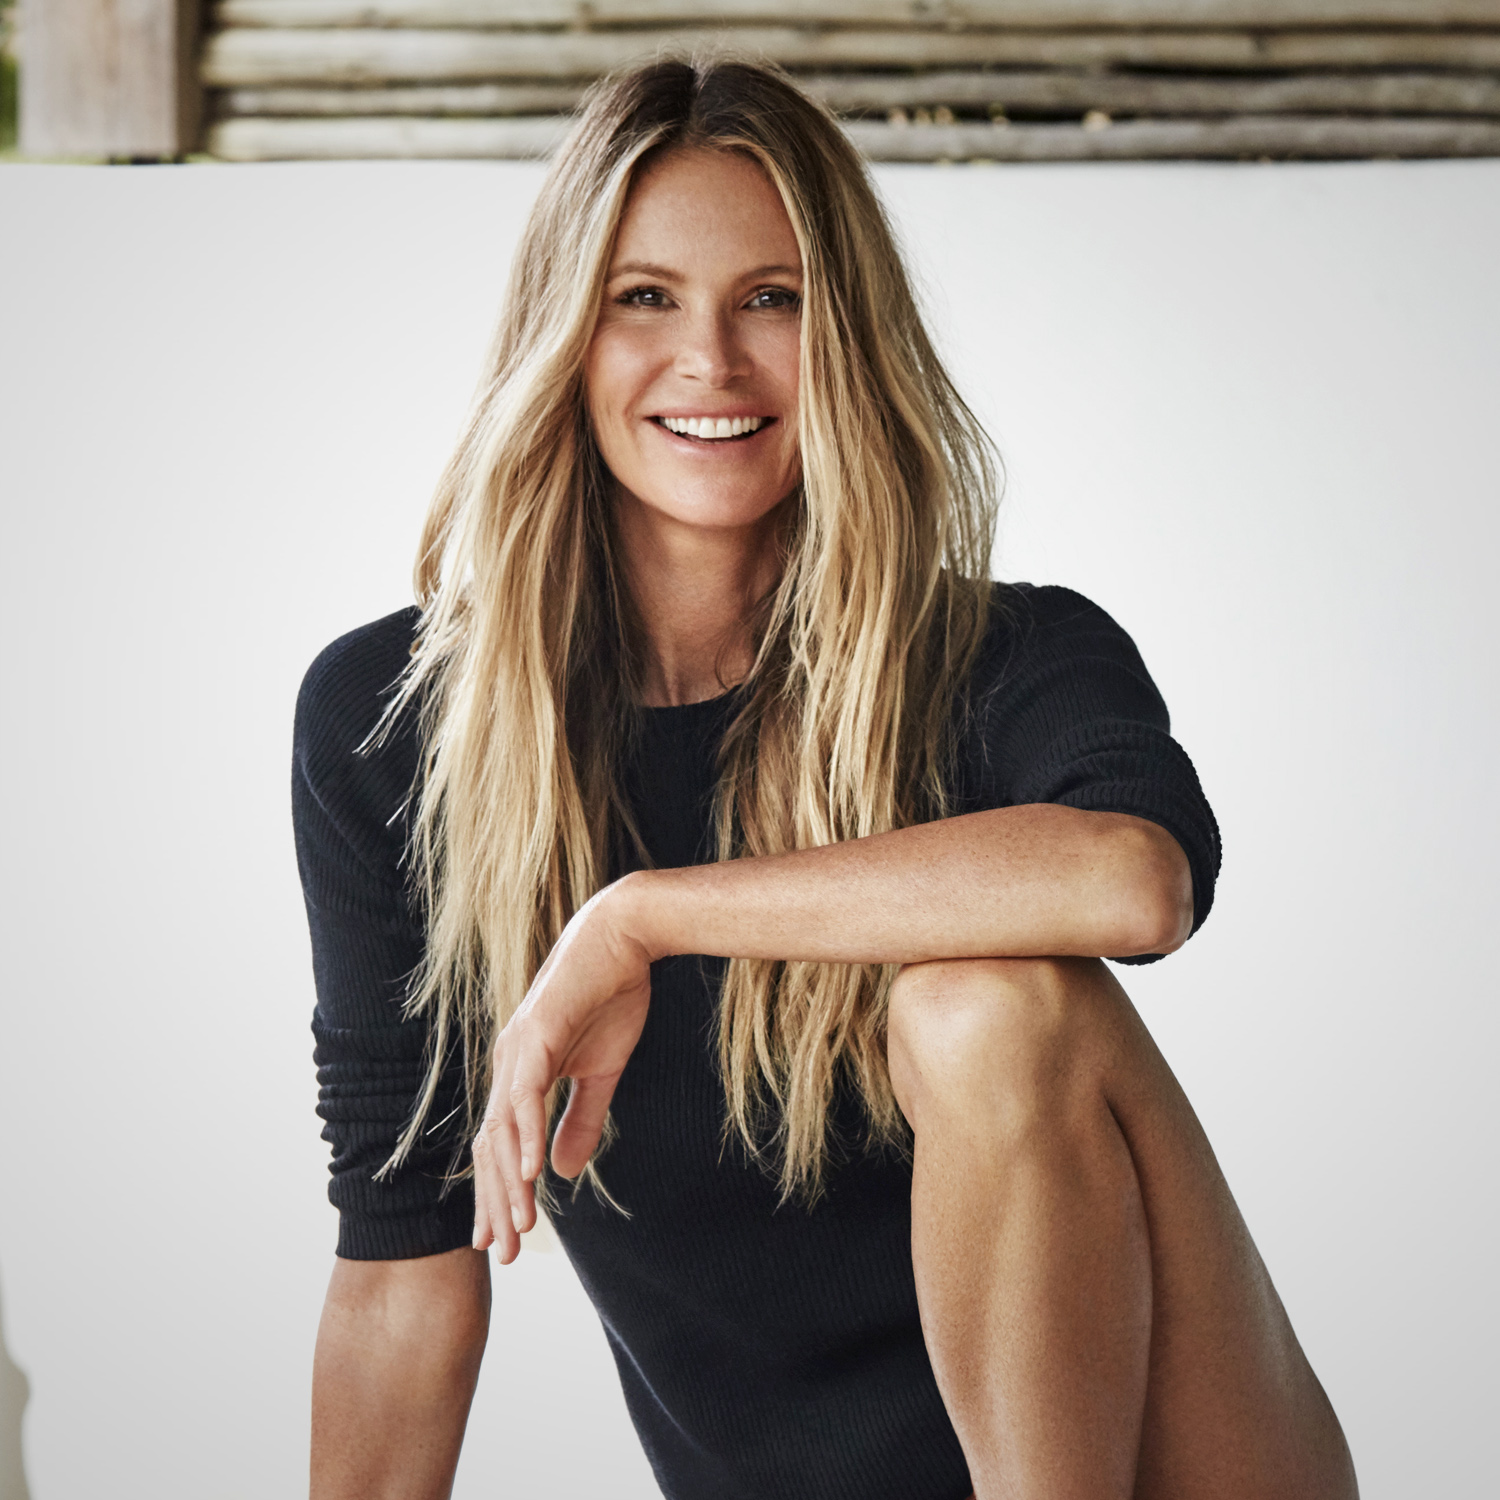 Exclusive Q&A with Elle McPherson, WelleCo's Co-Founder